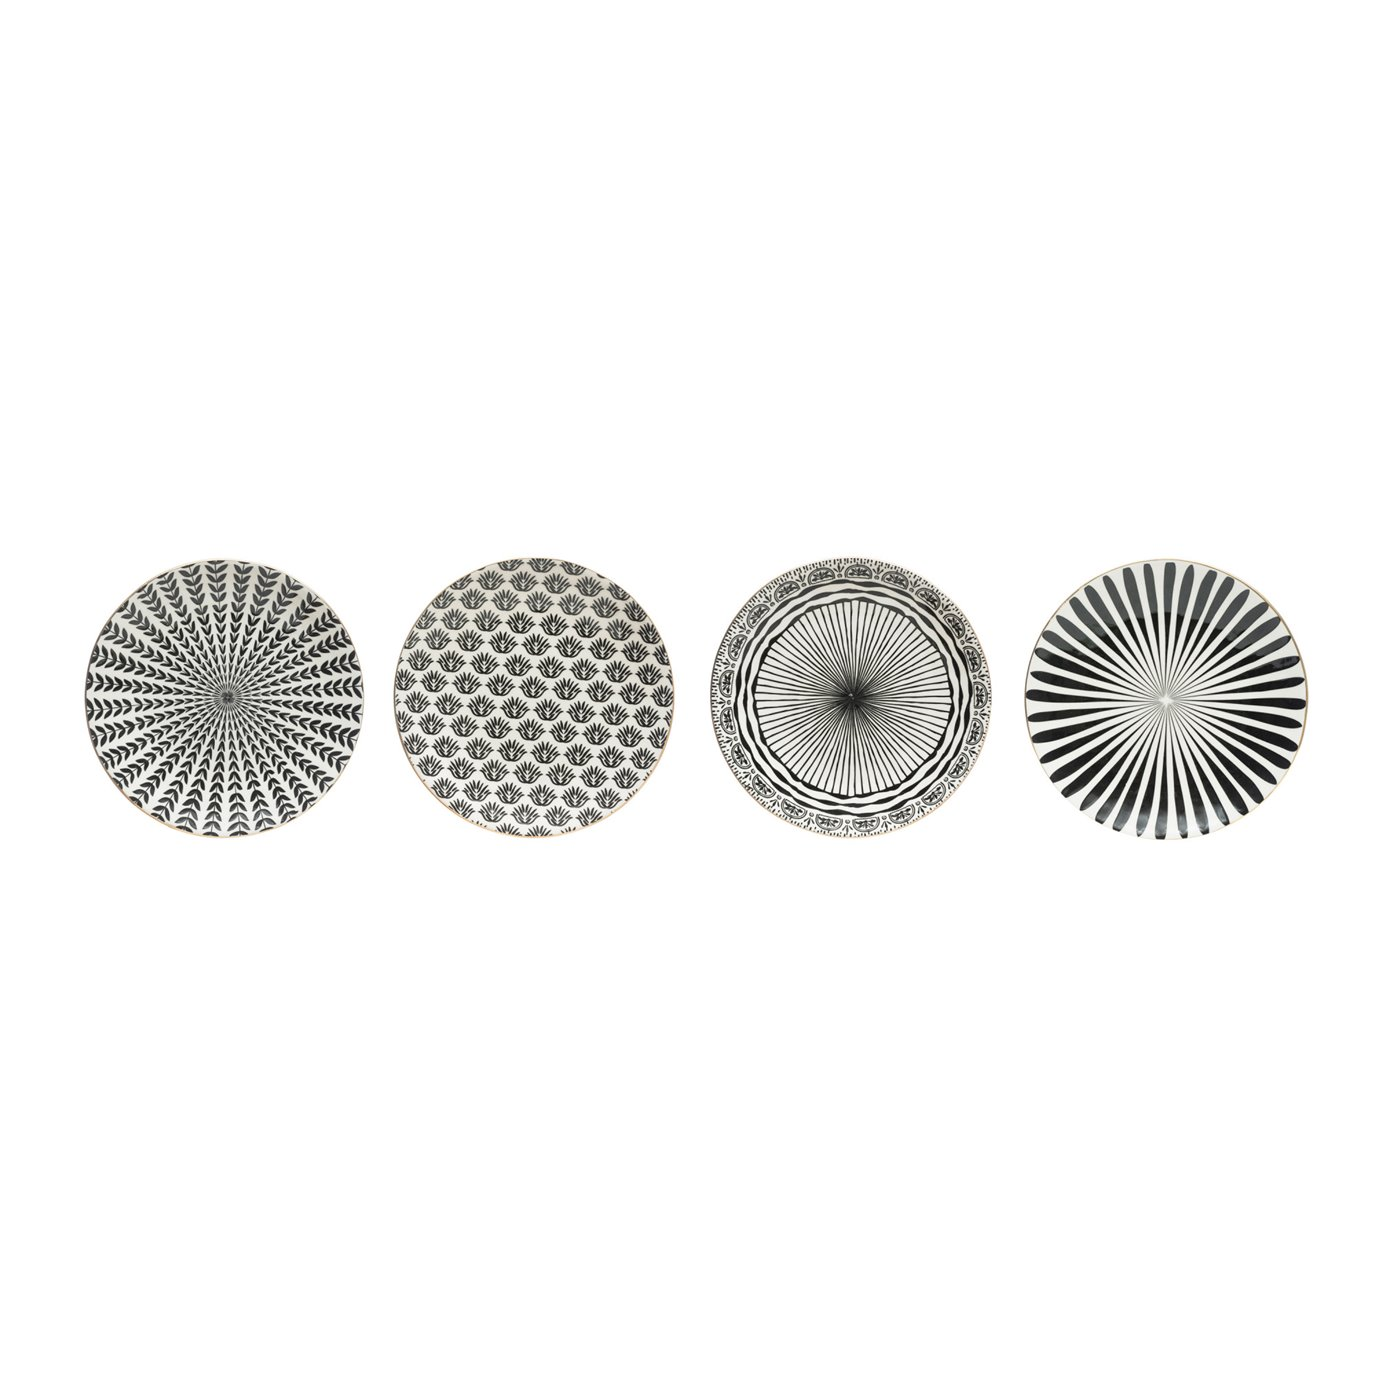 """8"""" Round Black & White Stoneware Plate with Gold Electroplating (Set of 4 Patterns)"""